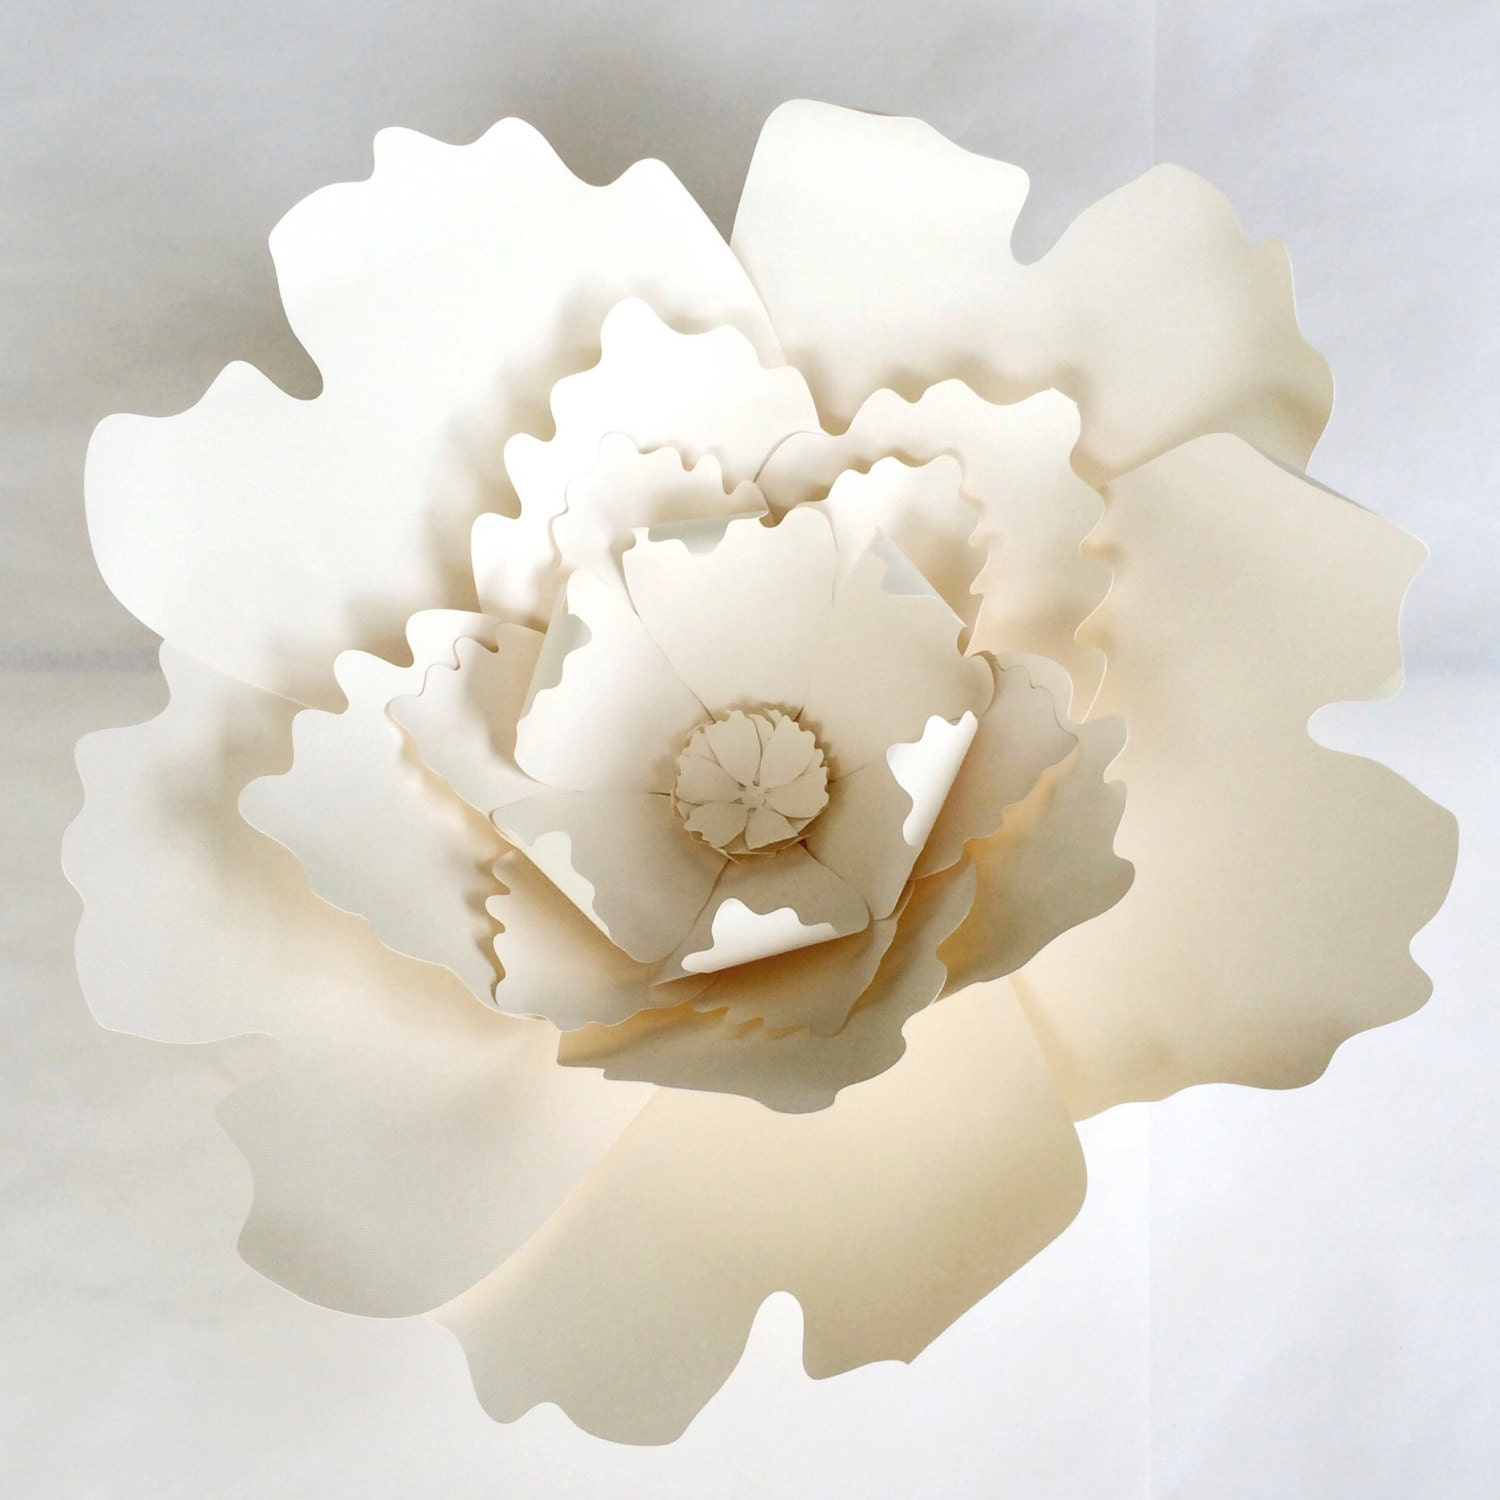 Large flower wall decor : Paper flower wall decor large by paperflora